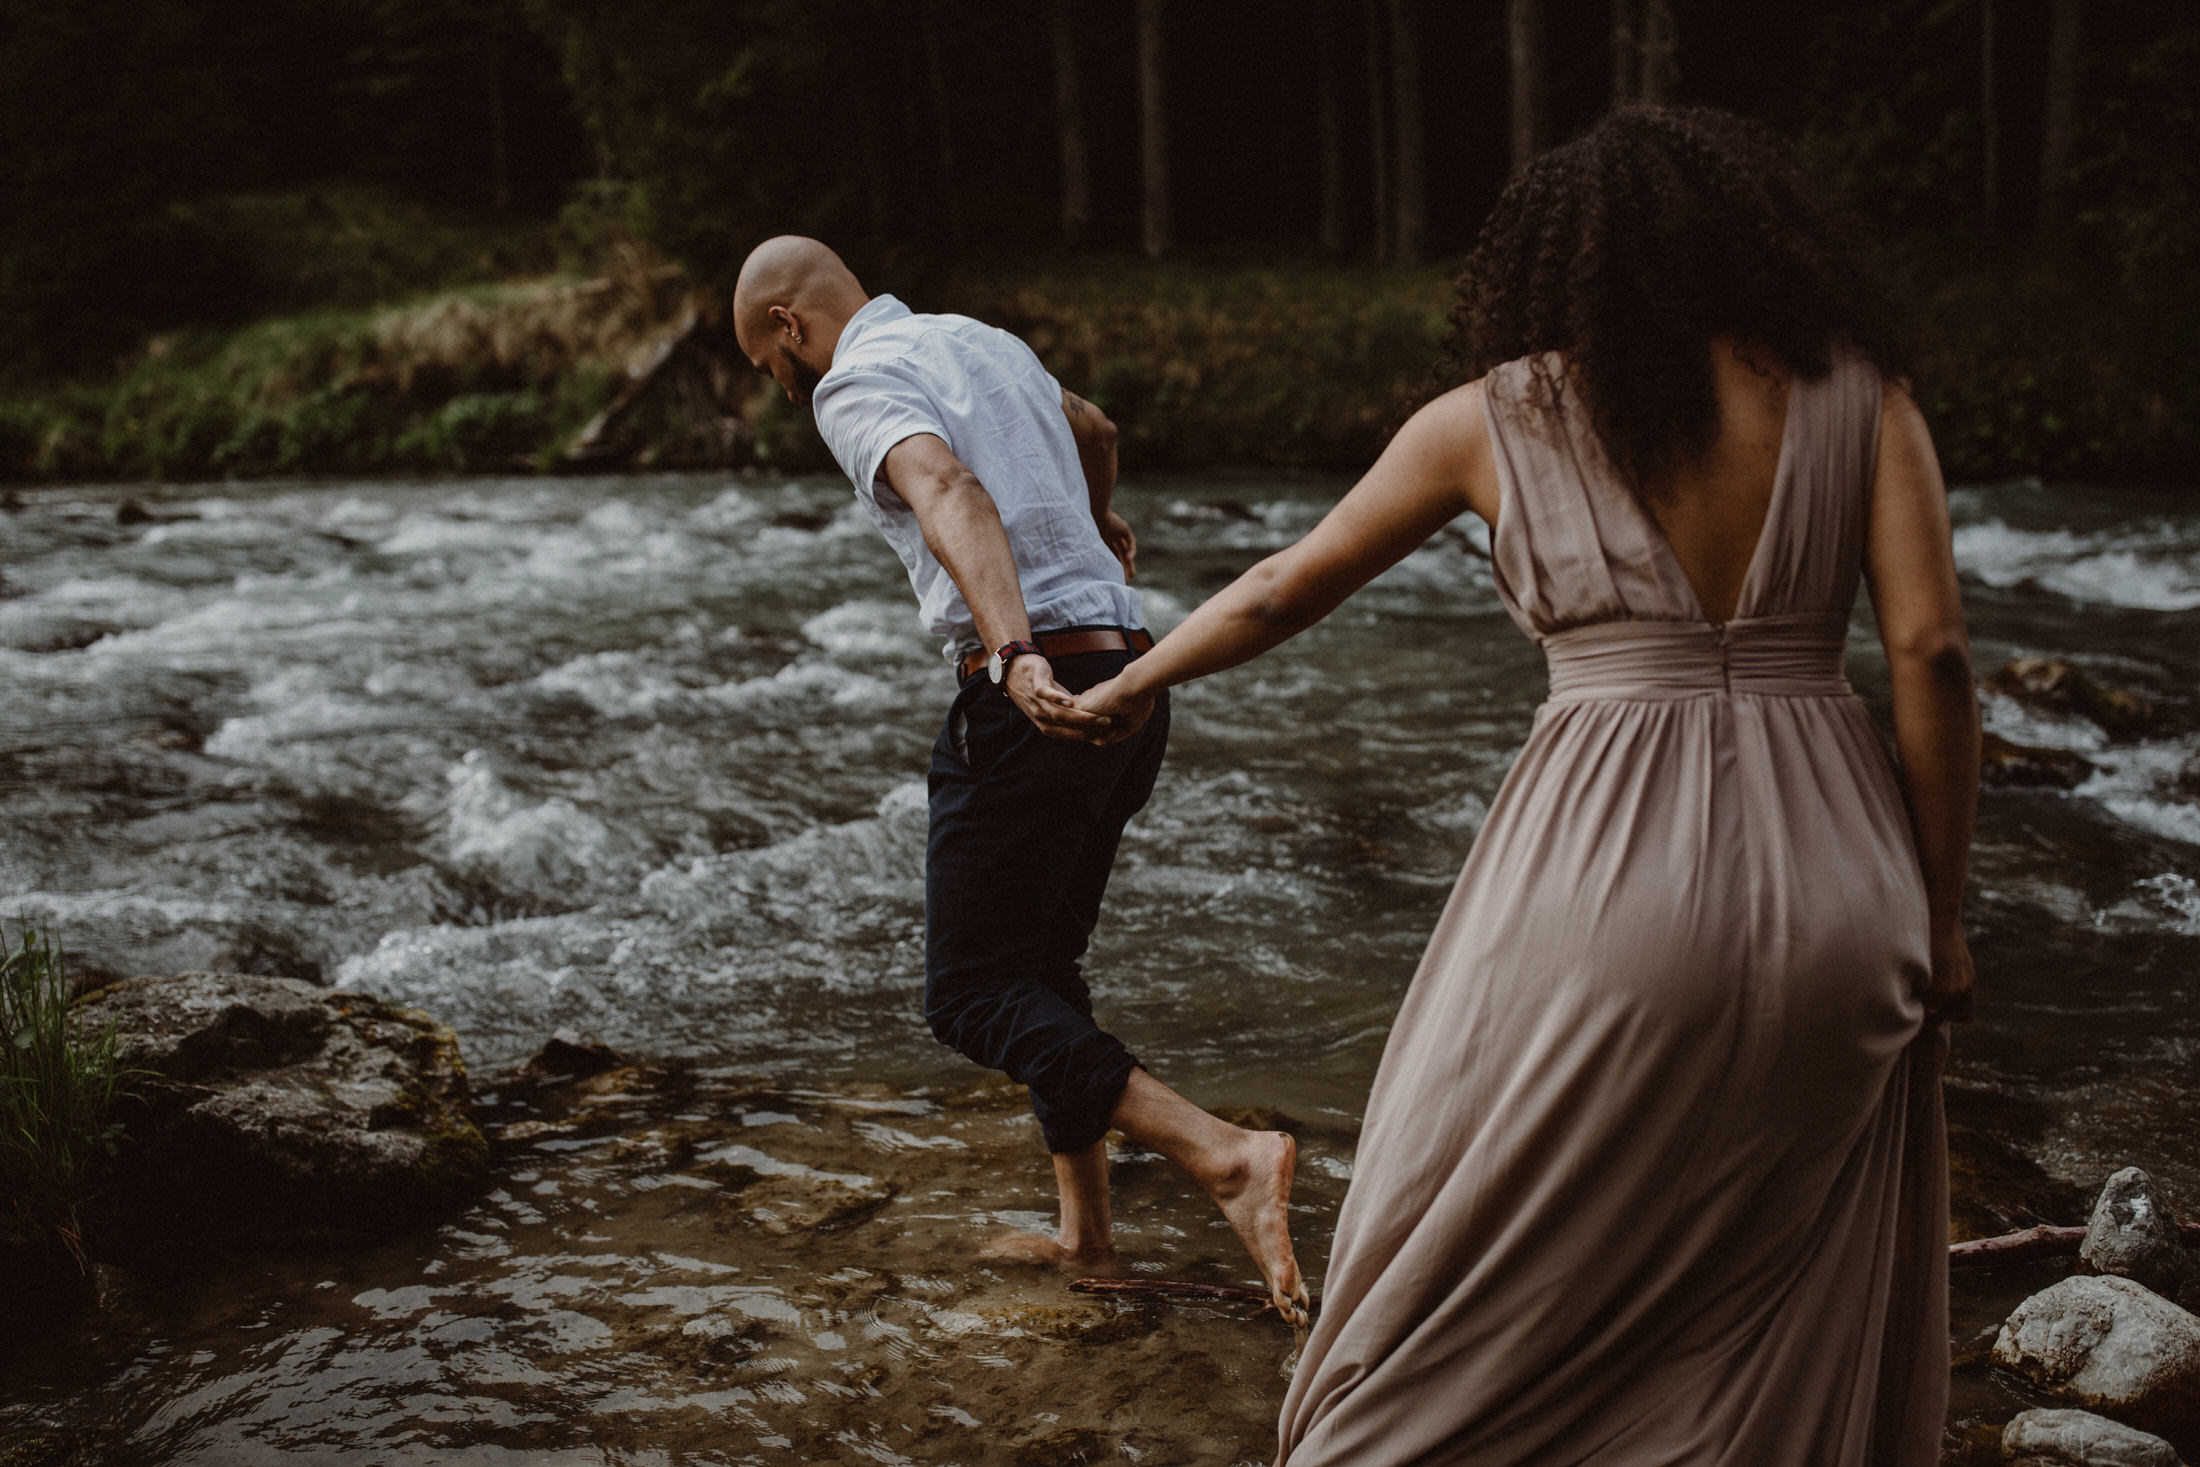 breanna-and-justin-engagement-photos-eibsee-garmisch-partenkirchen-0051